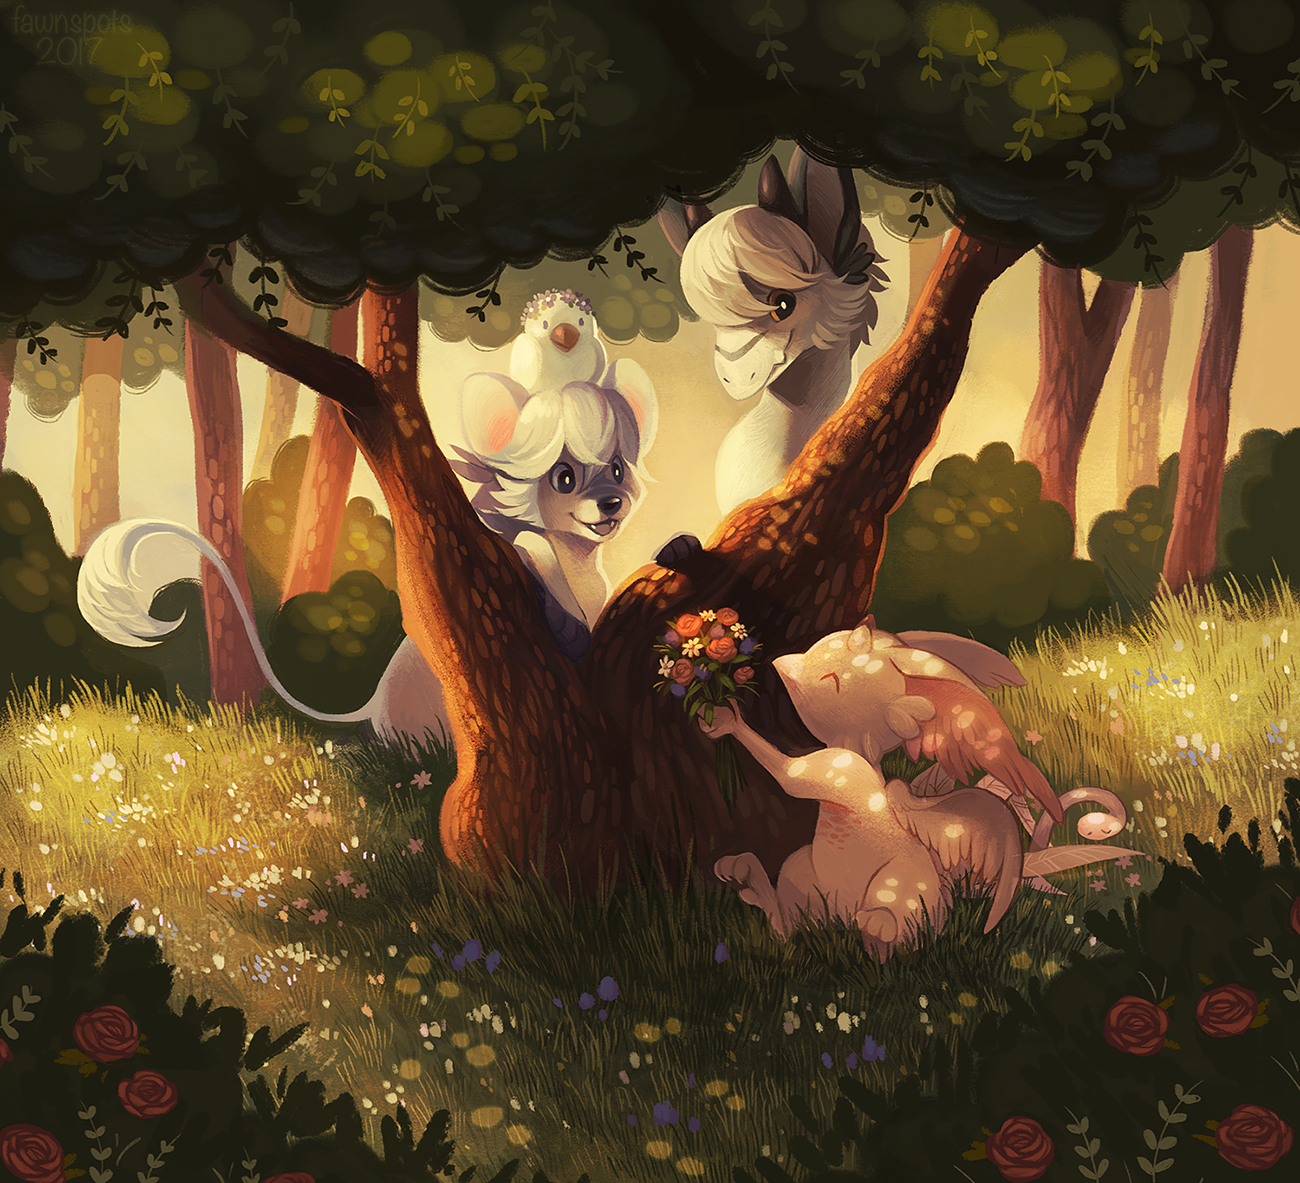 Friendship in the Thicket by Fawnpuppy